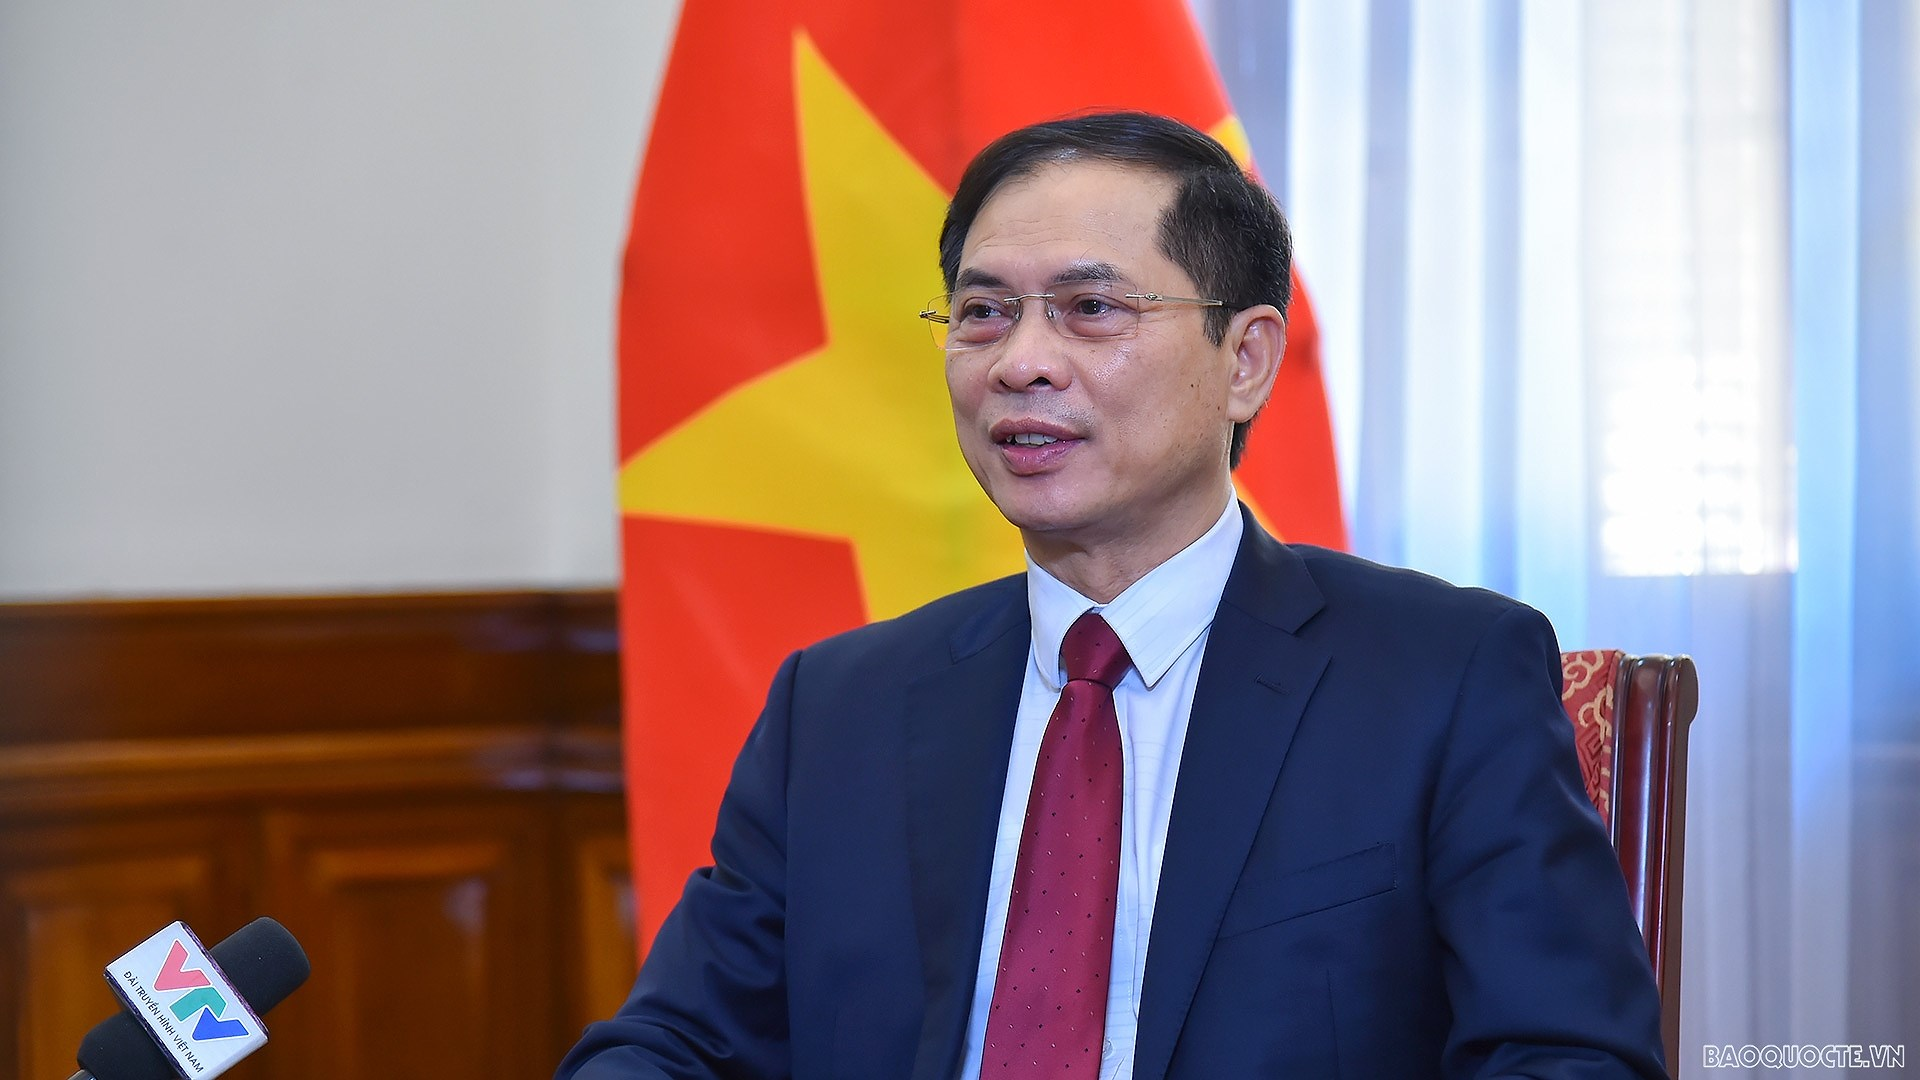 Minister hails significance of Conclusion on OV affairs hinh anh 1